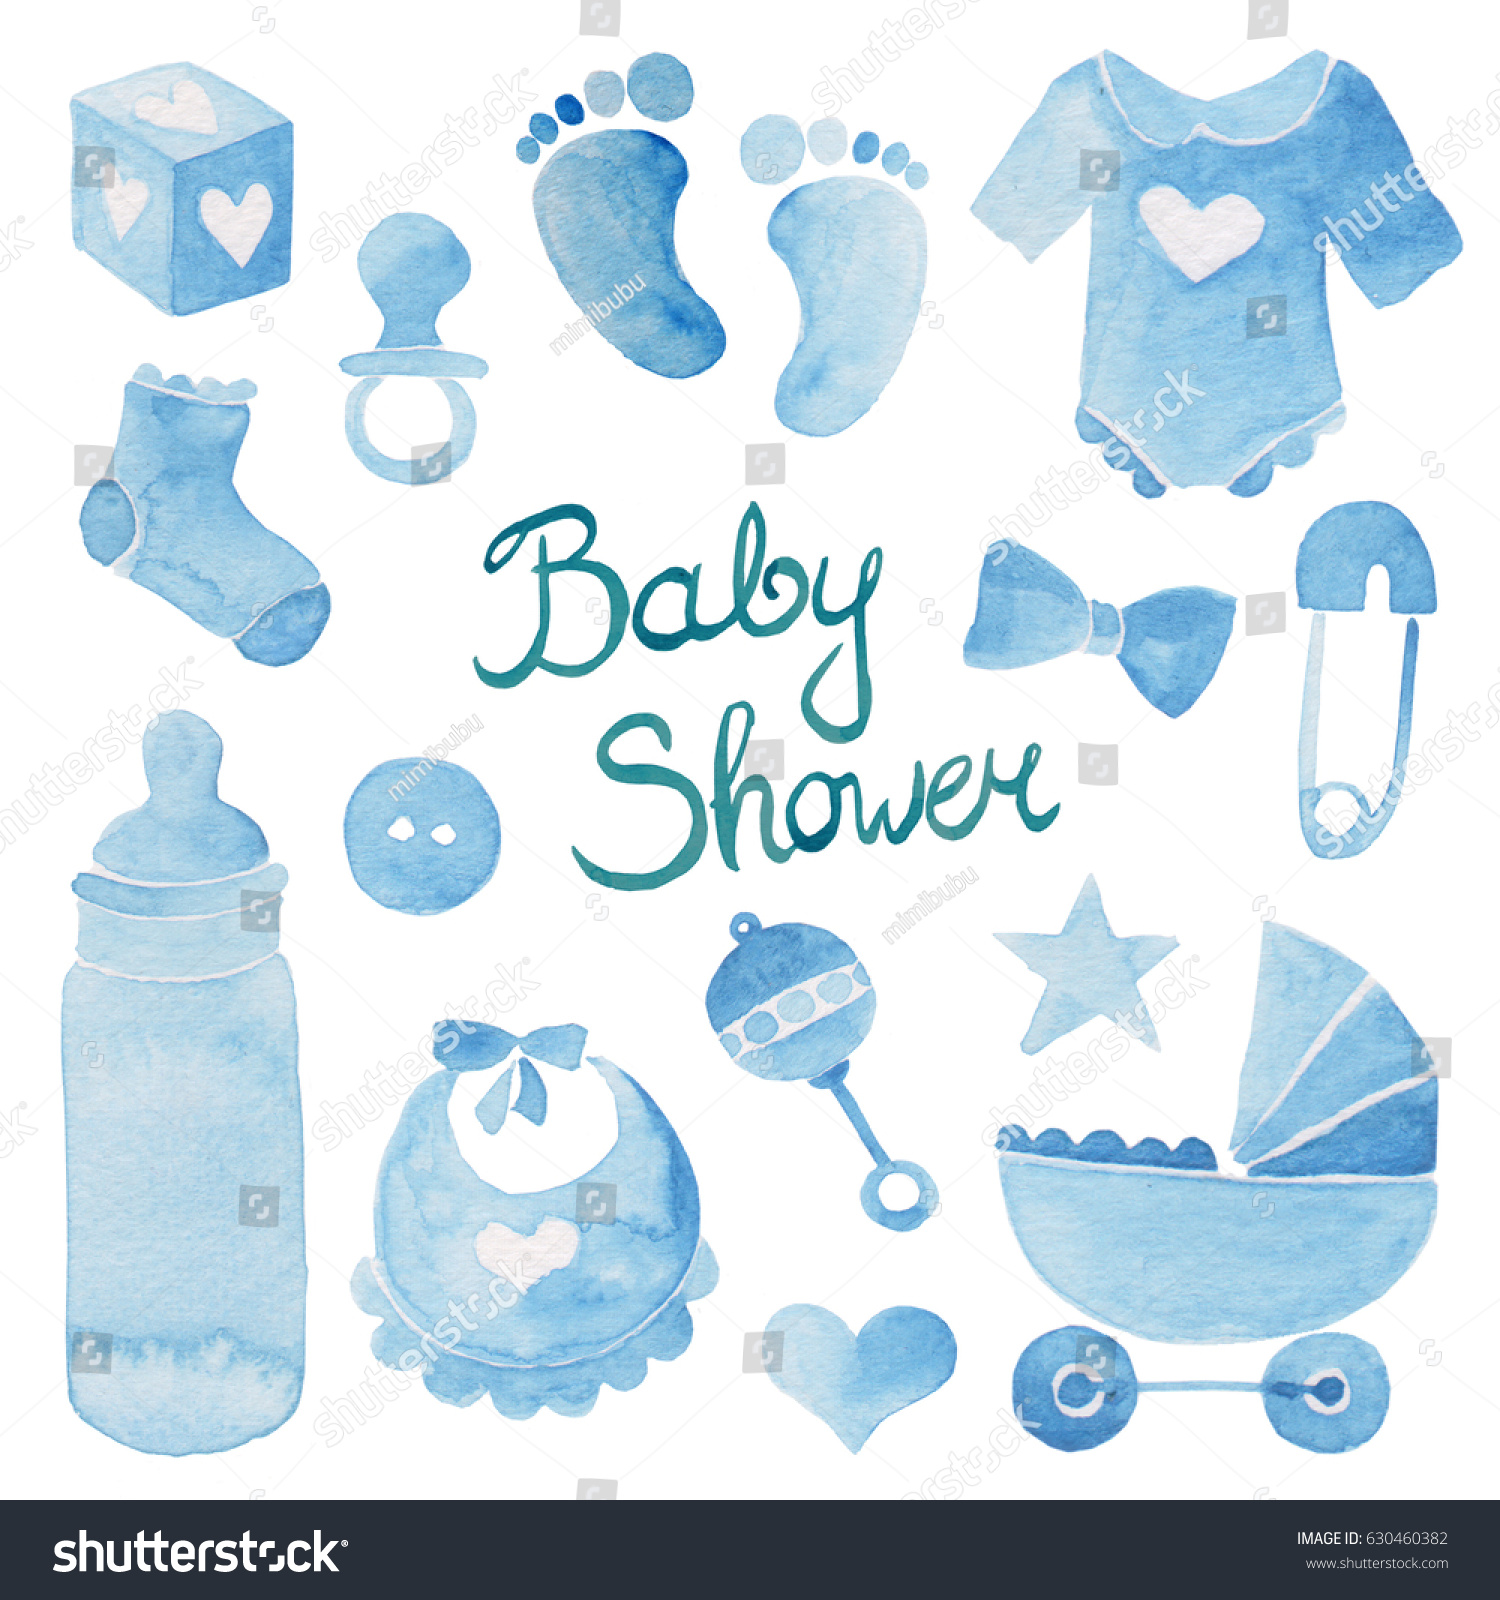 Watercolor Illustration Of Blue Baby Boy Shower Symbols And Hand Lettering  For Party Invitation Card